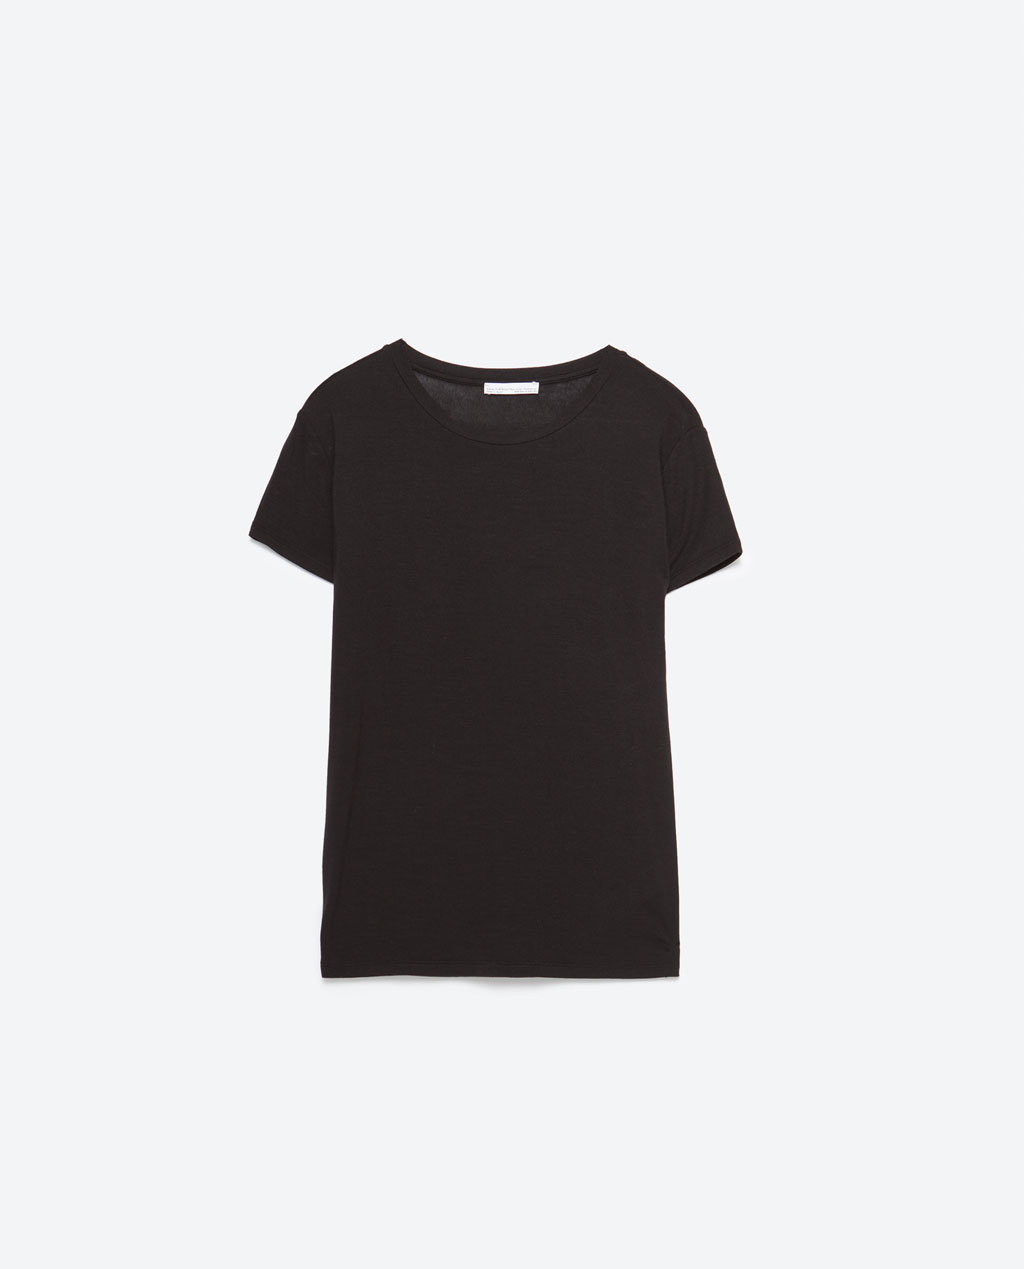 Basic T Shirt - neckline: round neck; pattern: plain; style: t-shirt; predominant colour: black; occasions: casual; length: standard; fibres: viscose/rayon - stretch; fit: body skimming; sleeve length: short sleeve; sleeve style: standard; pattern type: fabric; texture group: jersey - stretchy/drapey; season: s/s 2016